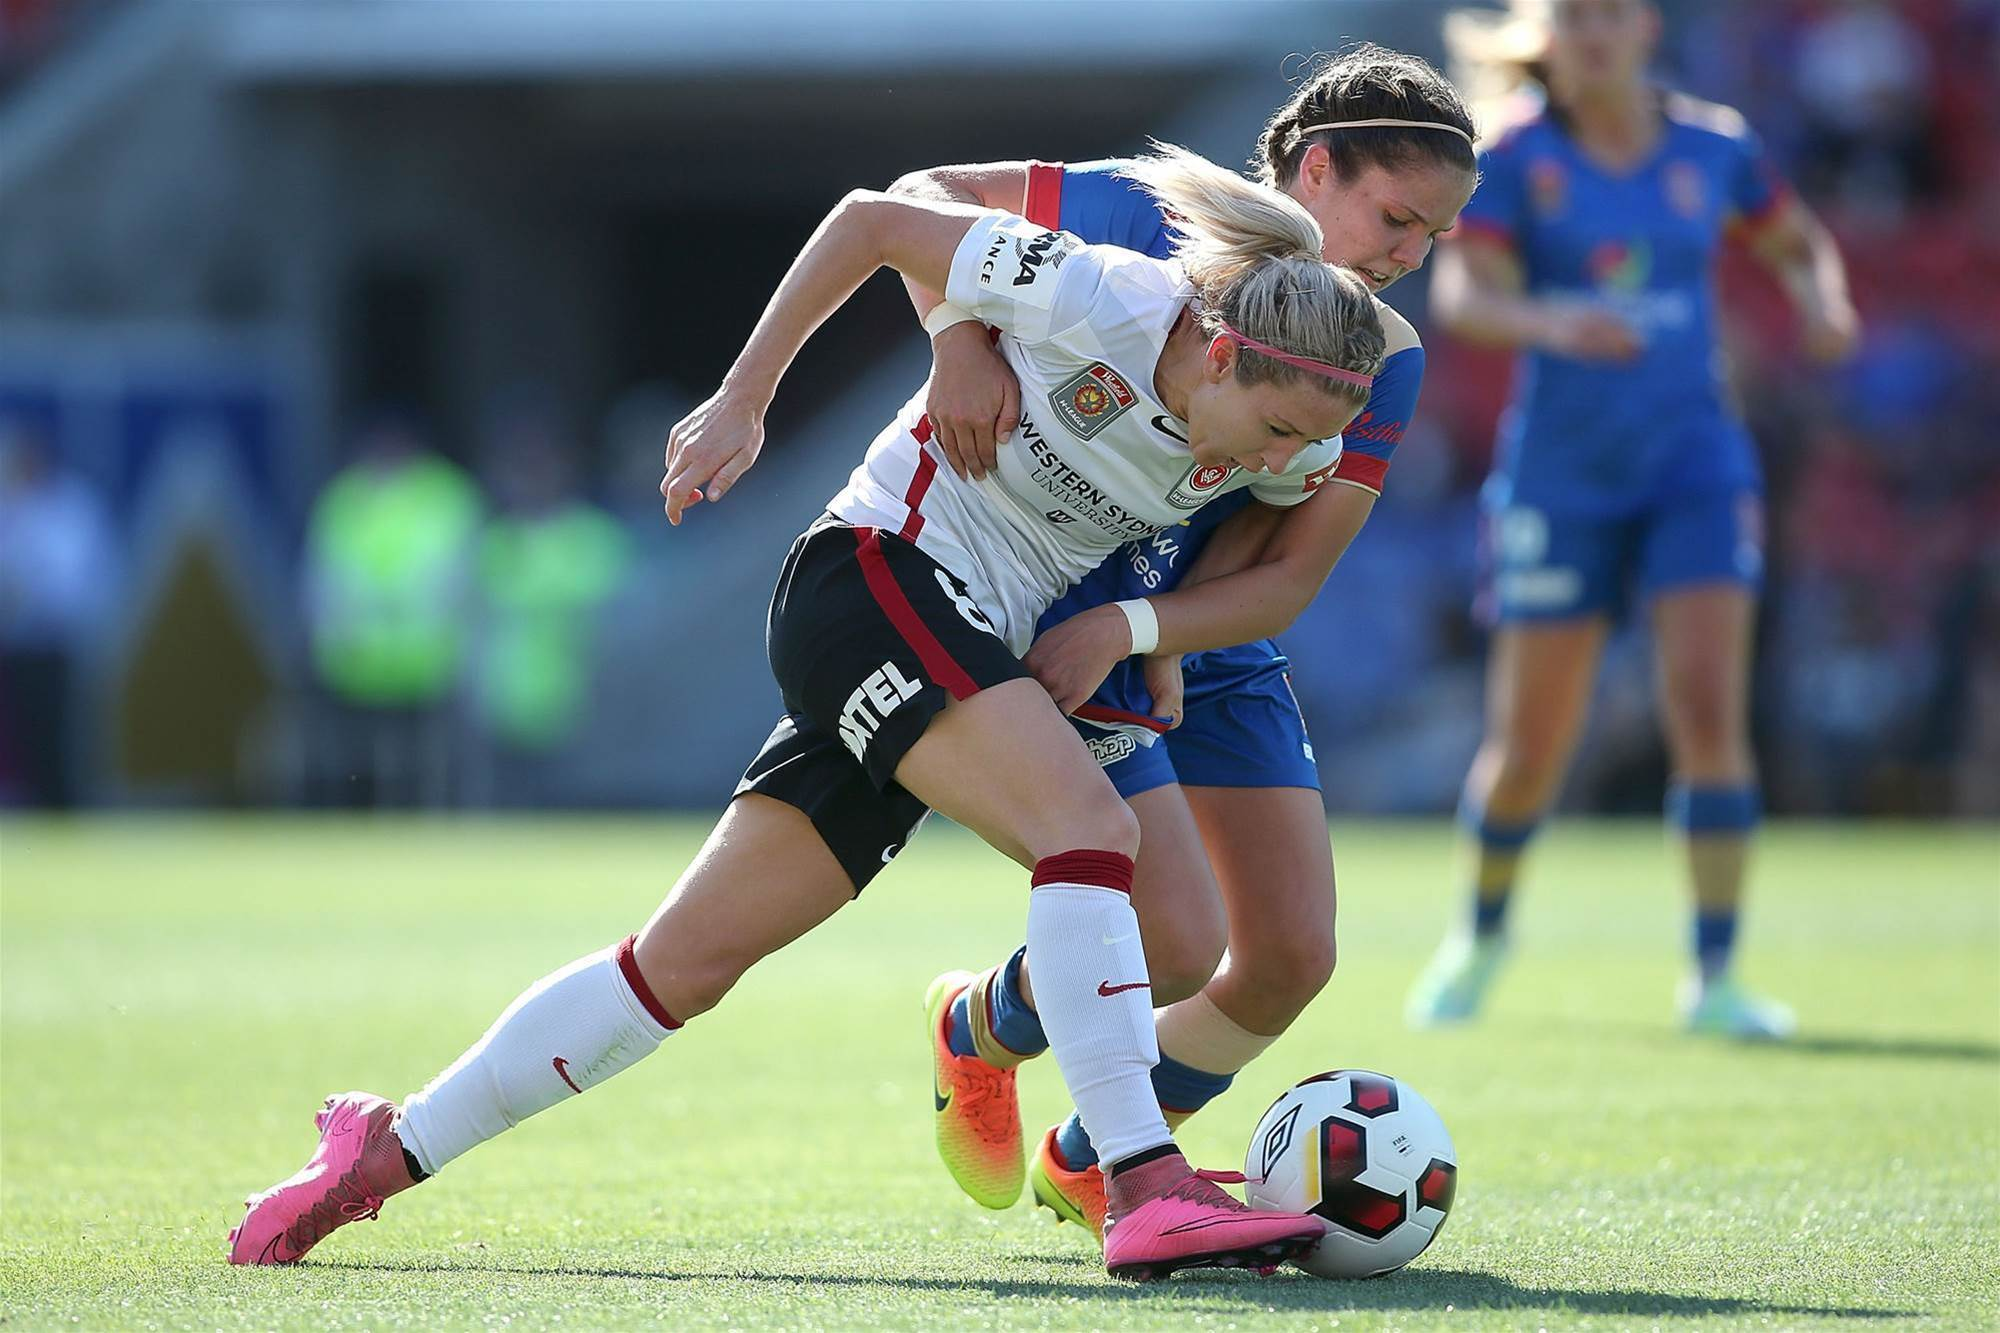 W-League Round 8 pic special